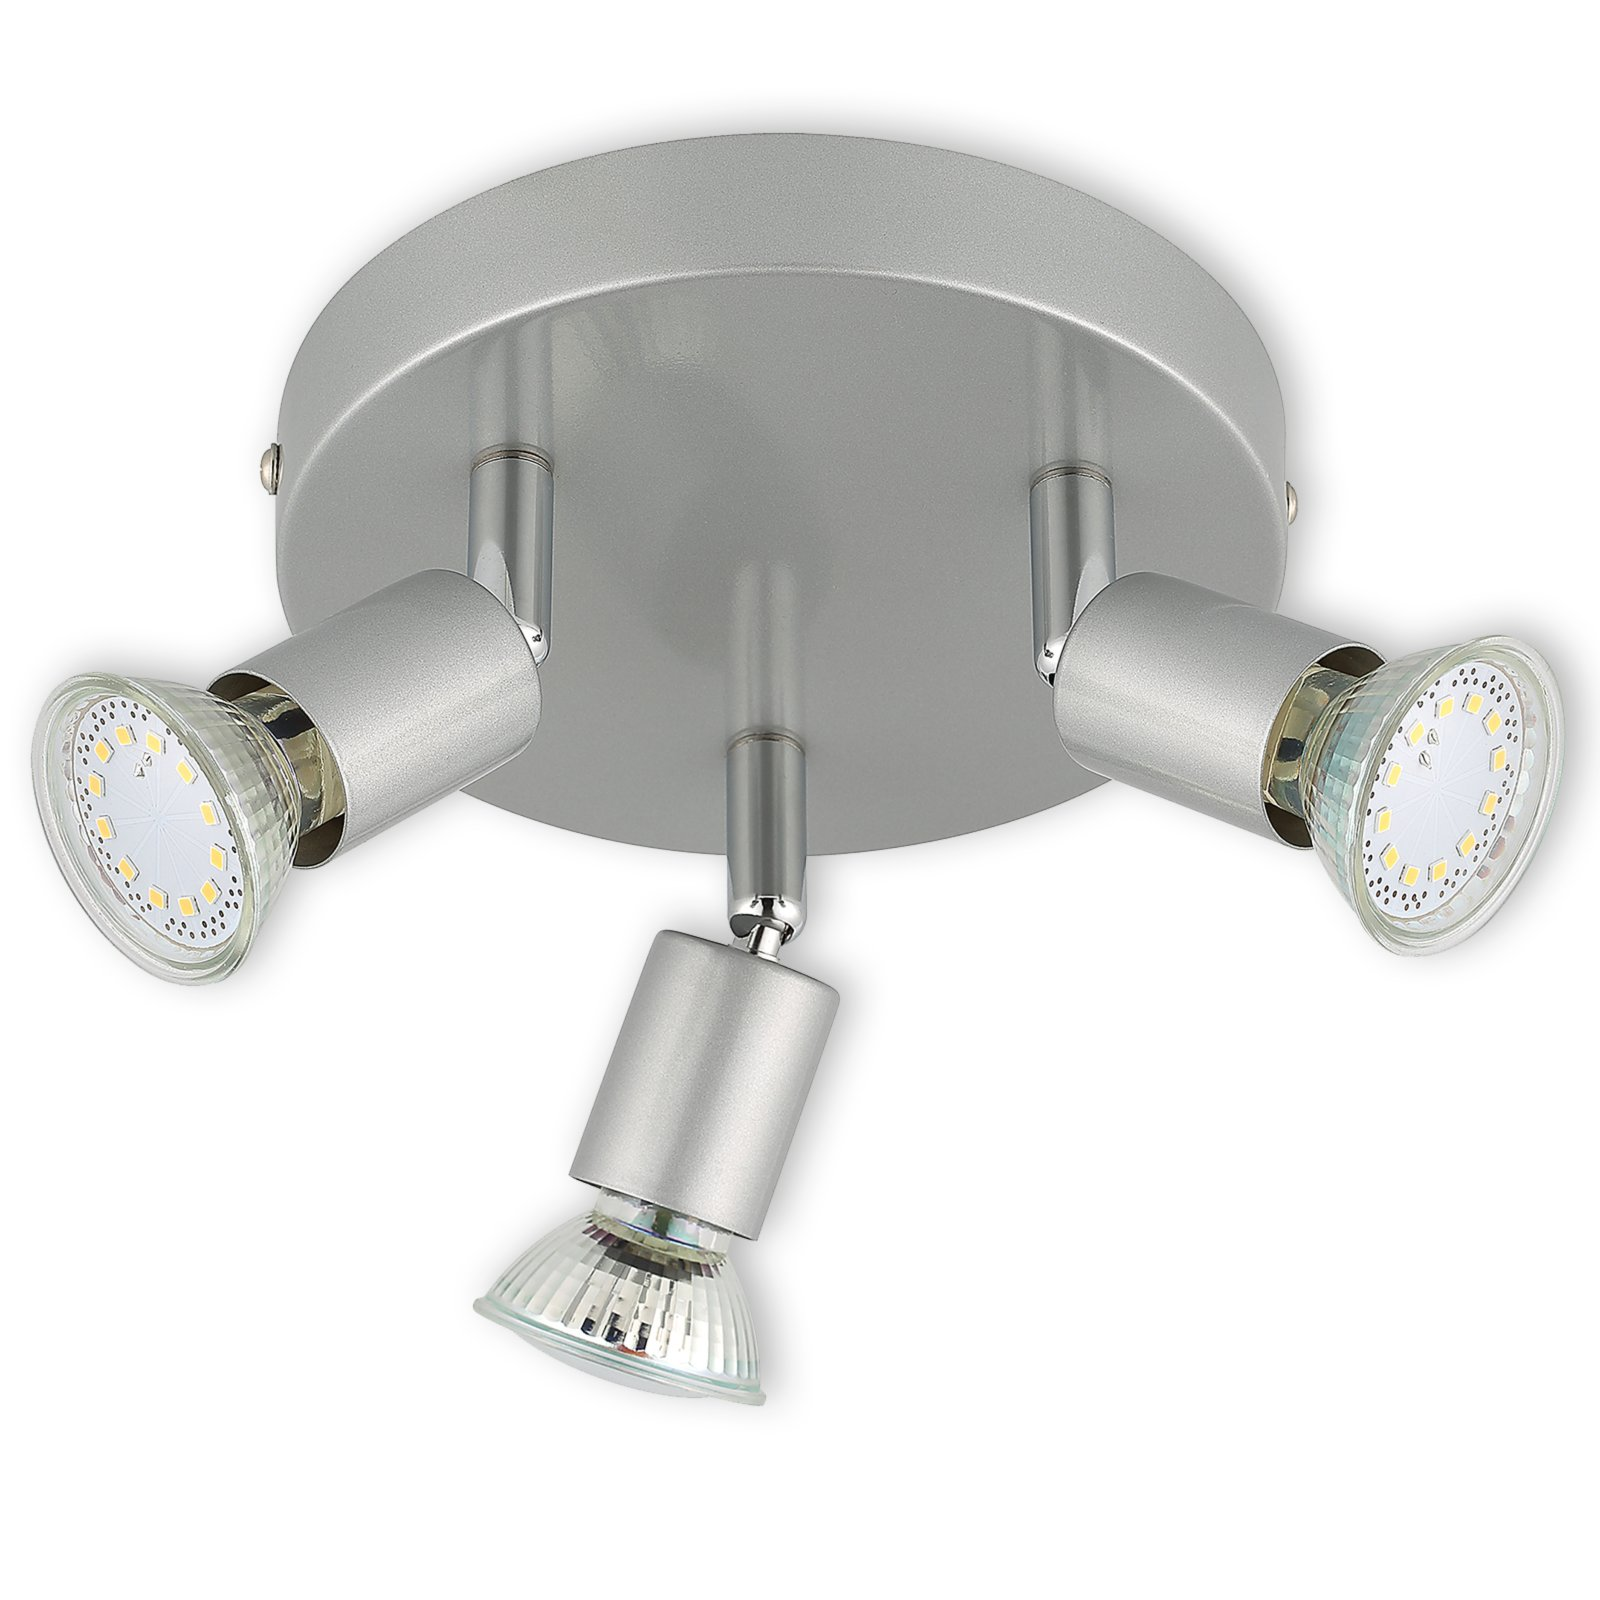 Led spotrondell mysterio titan 3 flammig warmwei for Lampen roller